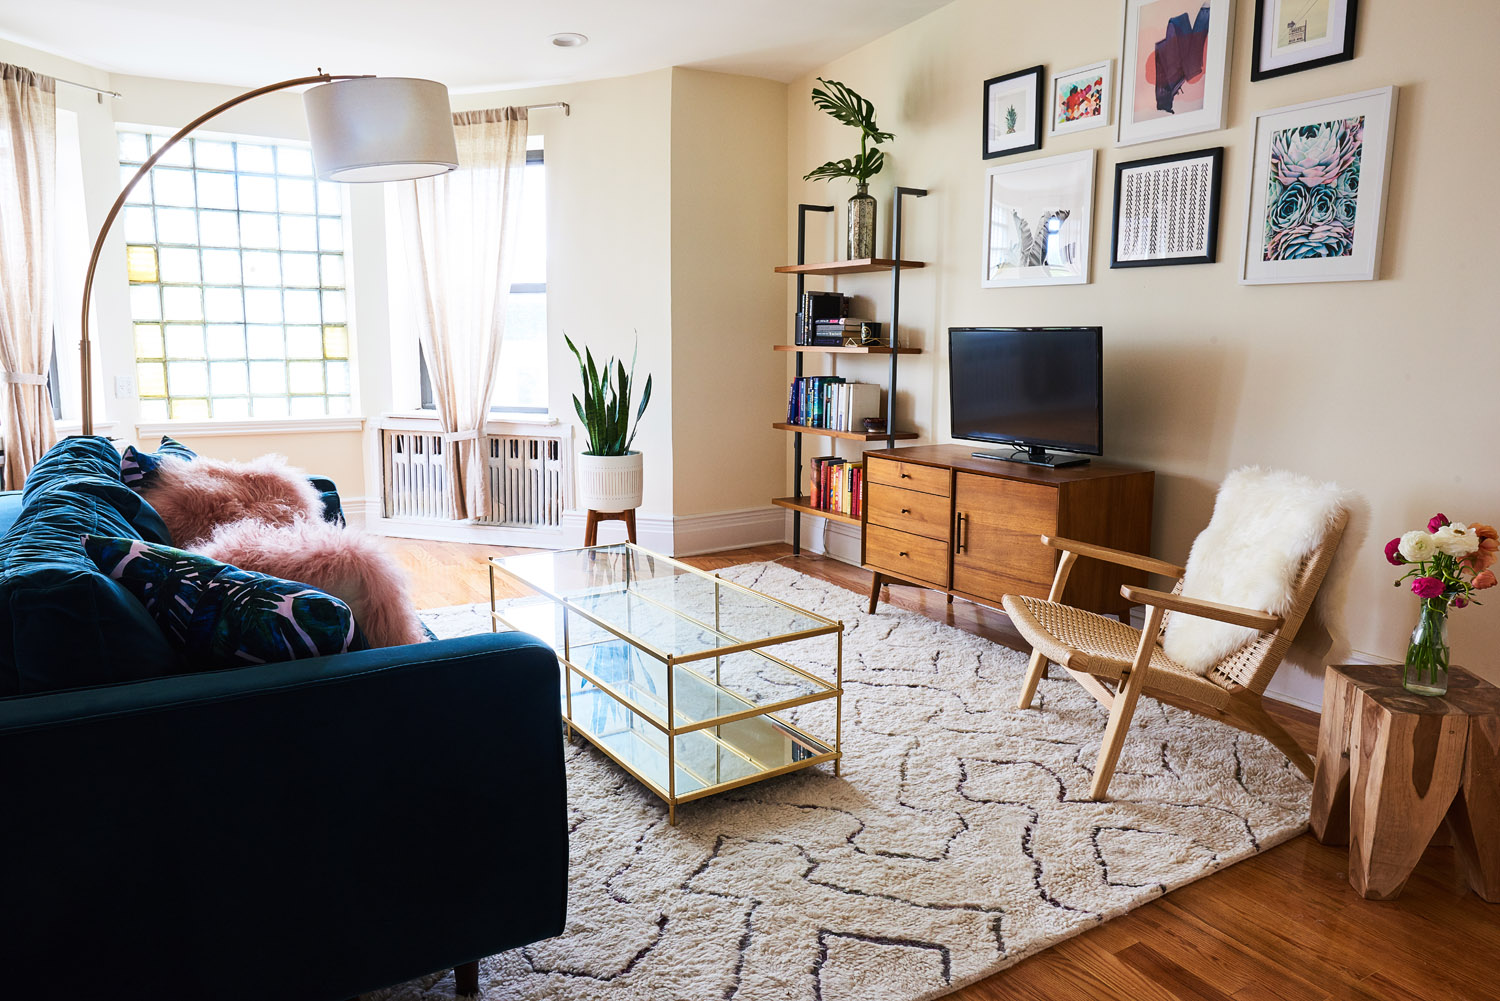 monroe sofa extra small corner making the most of a first apartment - front + main